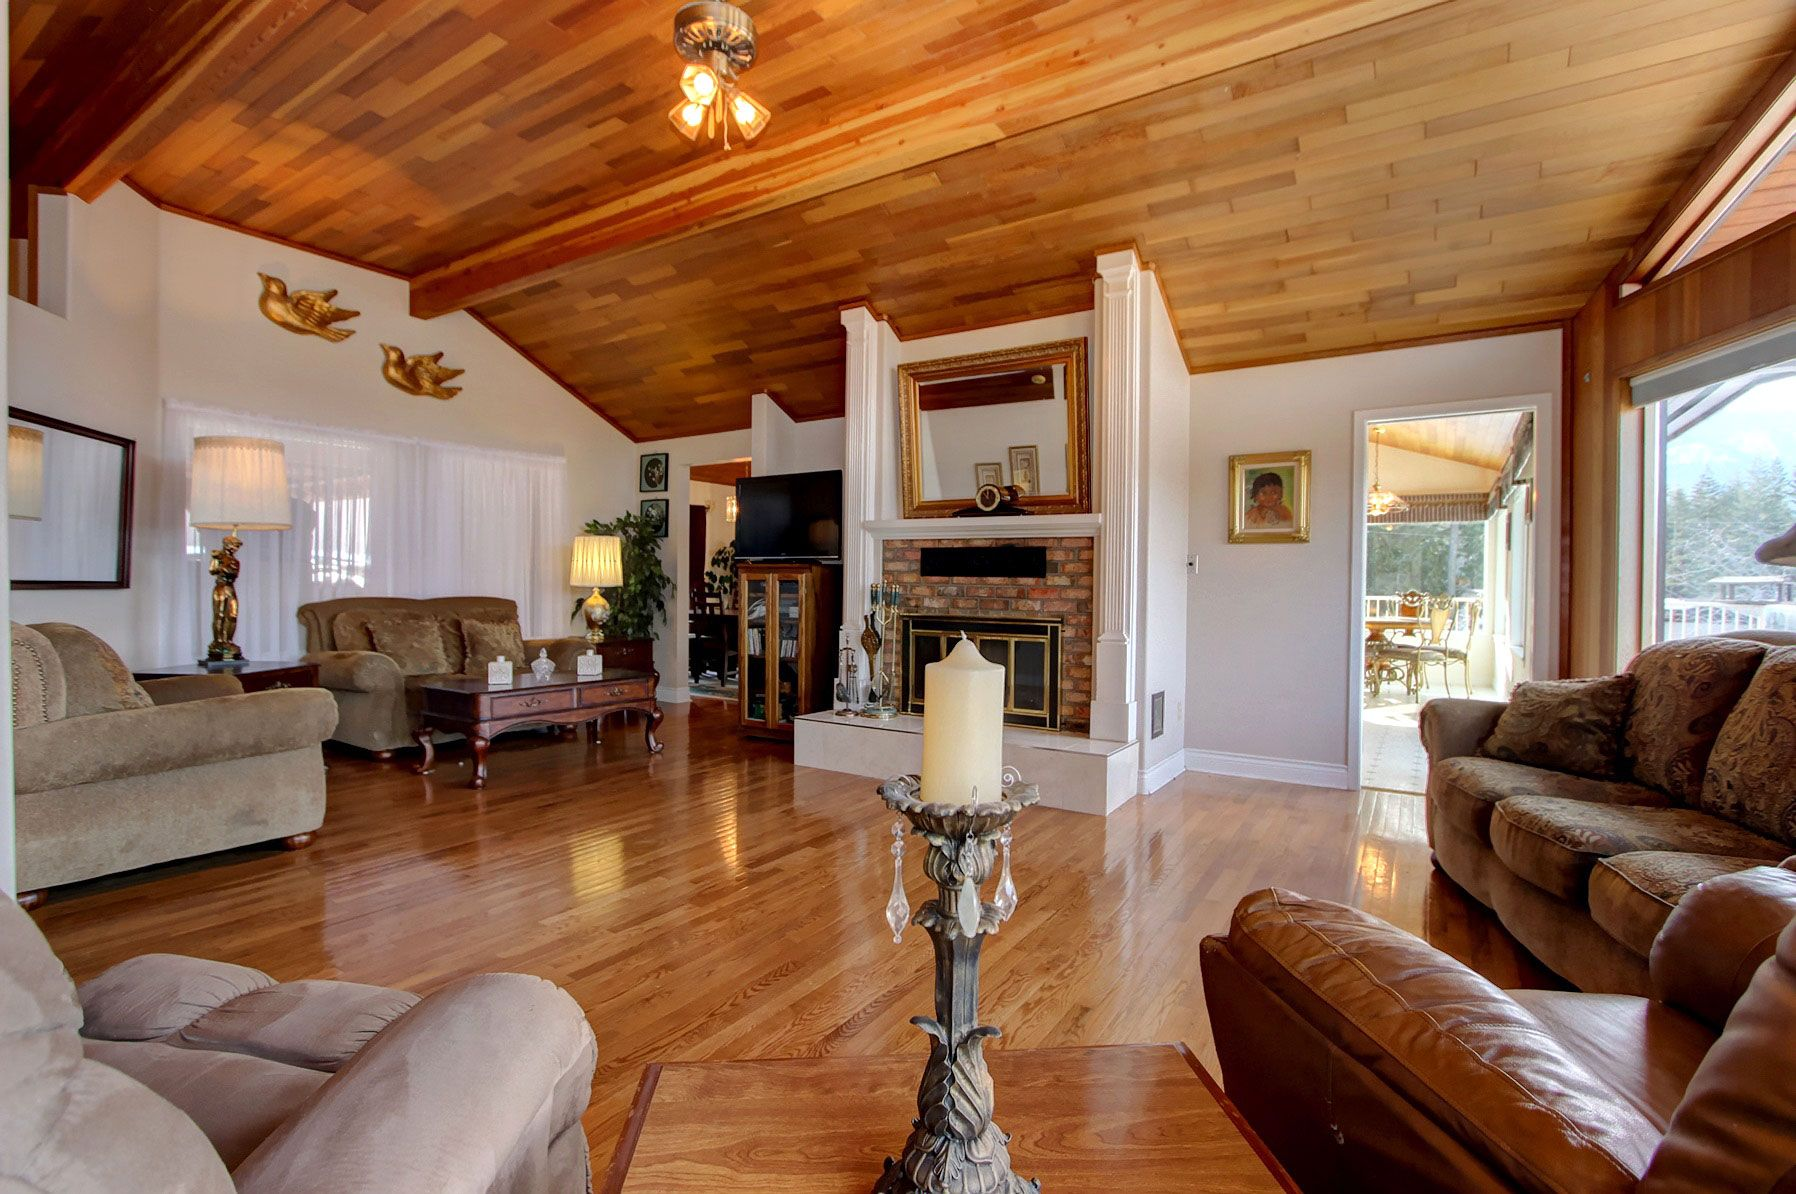 Photo 22: Photos: 1350 Trans Canada Highway in Sorrento: House for sale : MLS®# 10225818